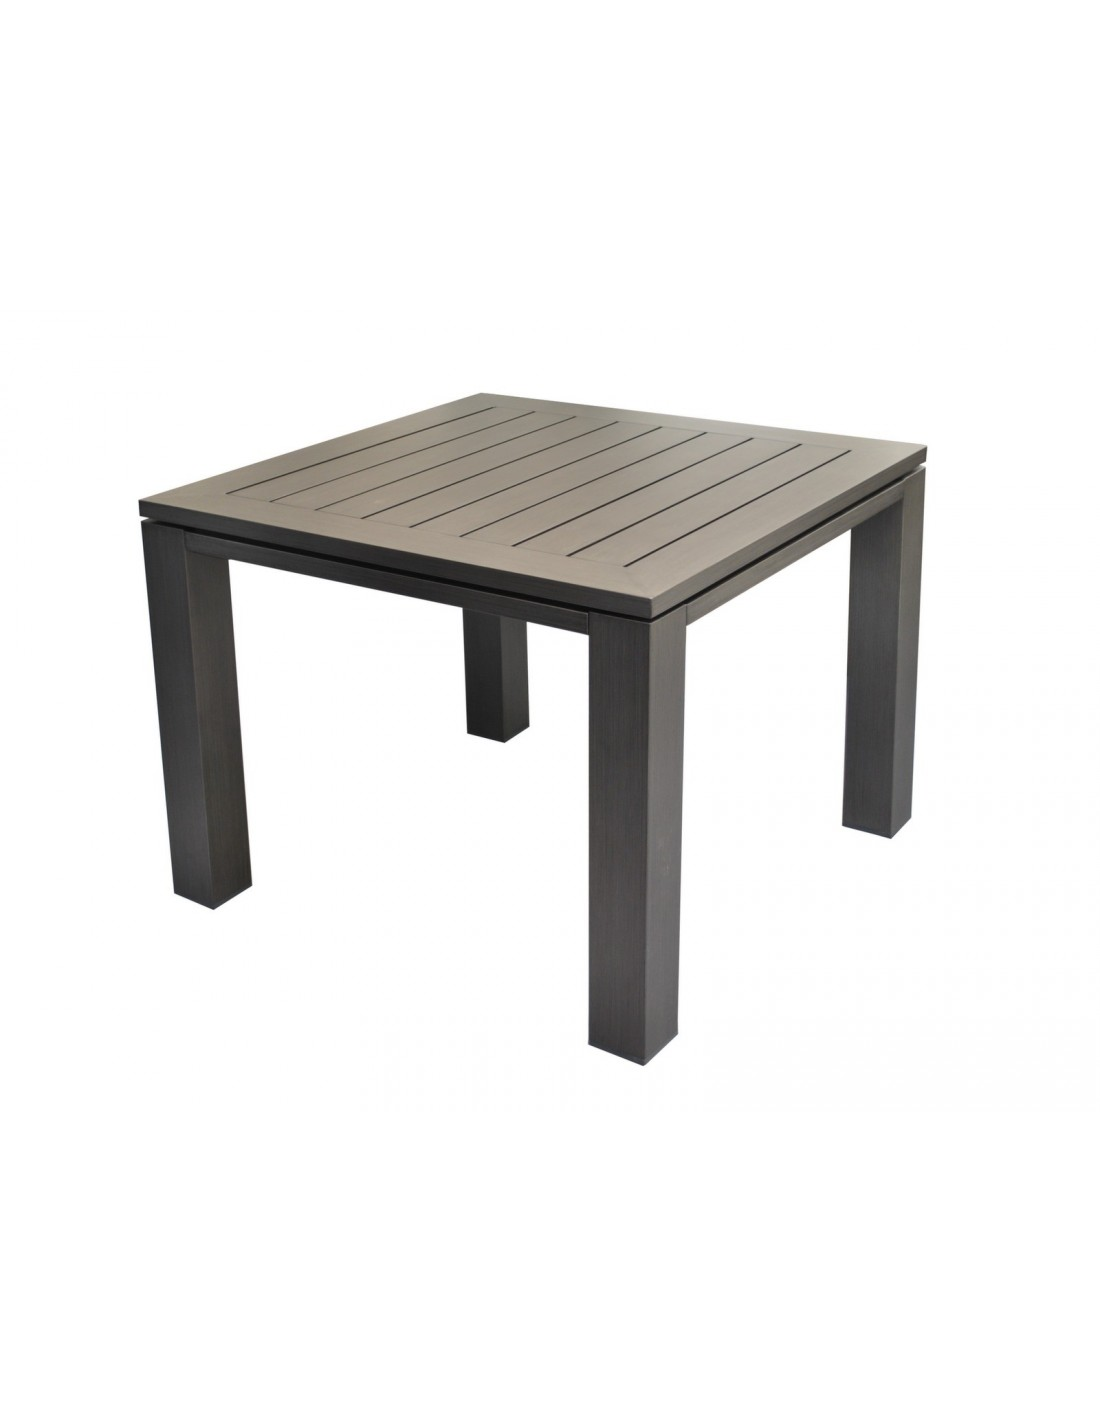 Emejing Table De Jardin Aluminium Oceo Images - Amazing House ...